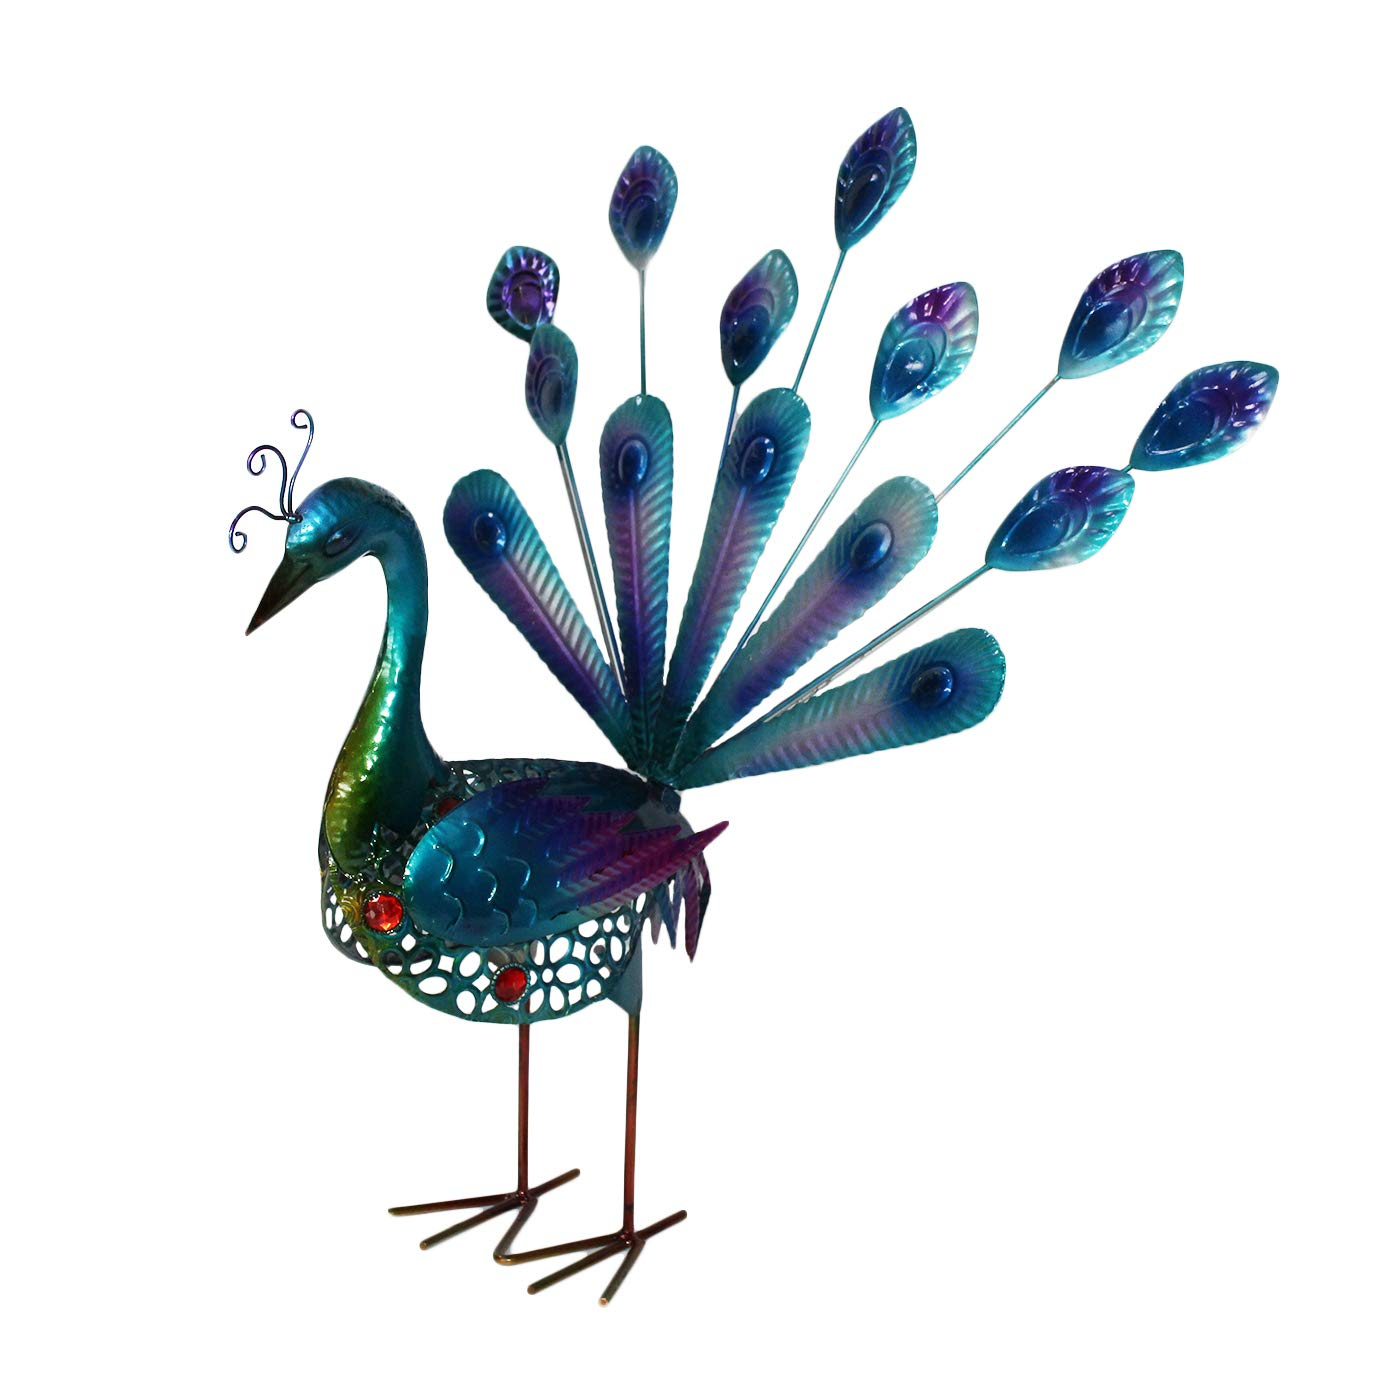 YOUKOOD 20 Inch Beautiful Peacock Garden Outdoor Indoor Decor Statues, Metal Yard Art Peacocks Lawn Ornaments Yard Party Landscape Figurine Decorations (Blue Peacock)